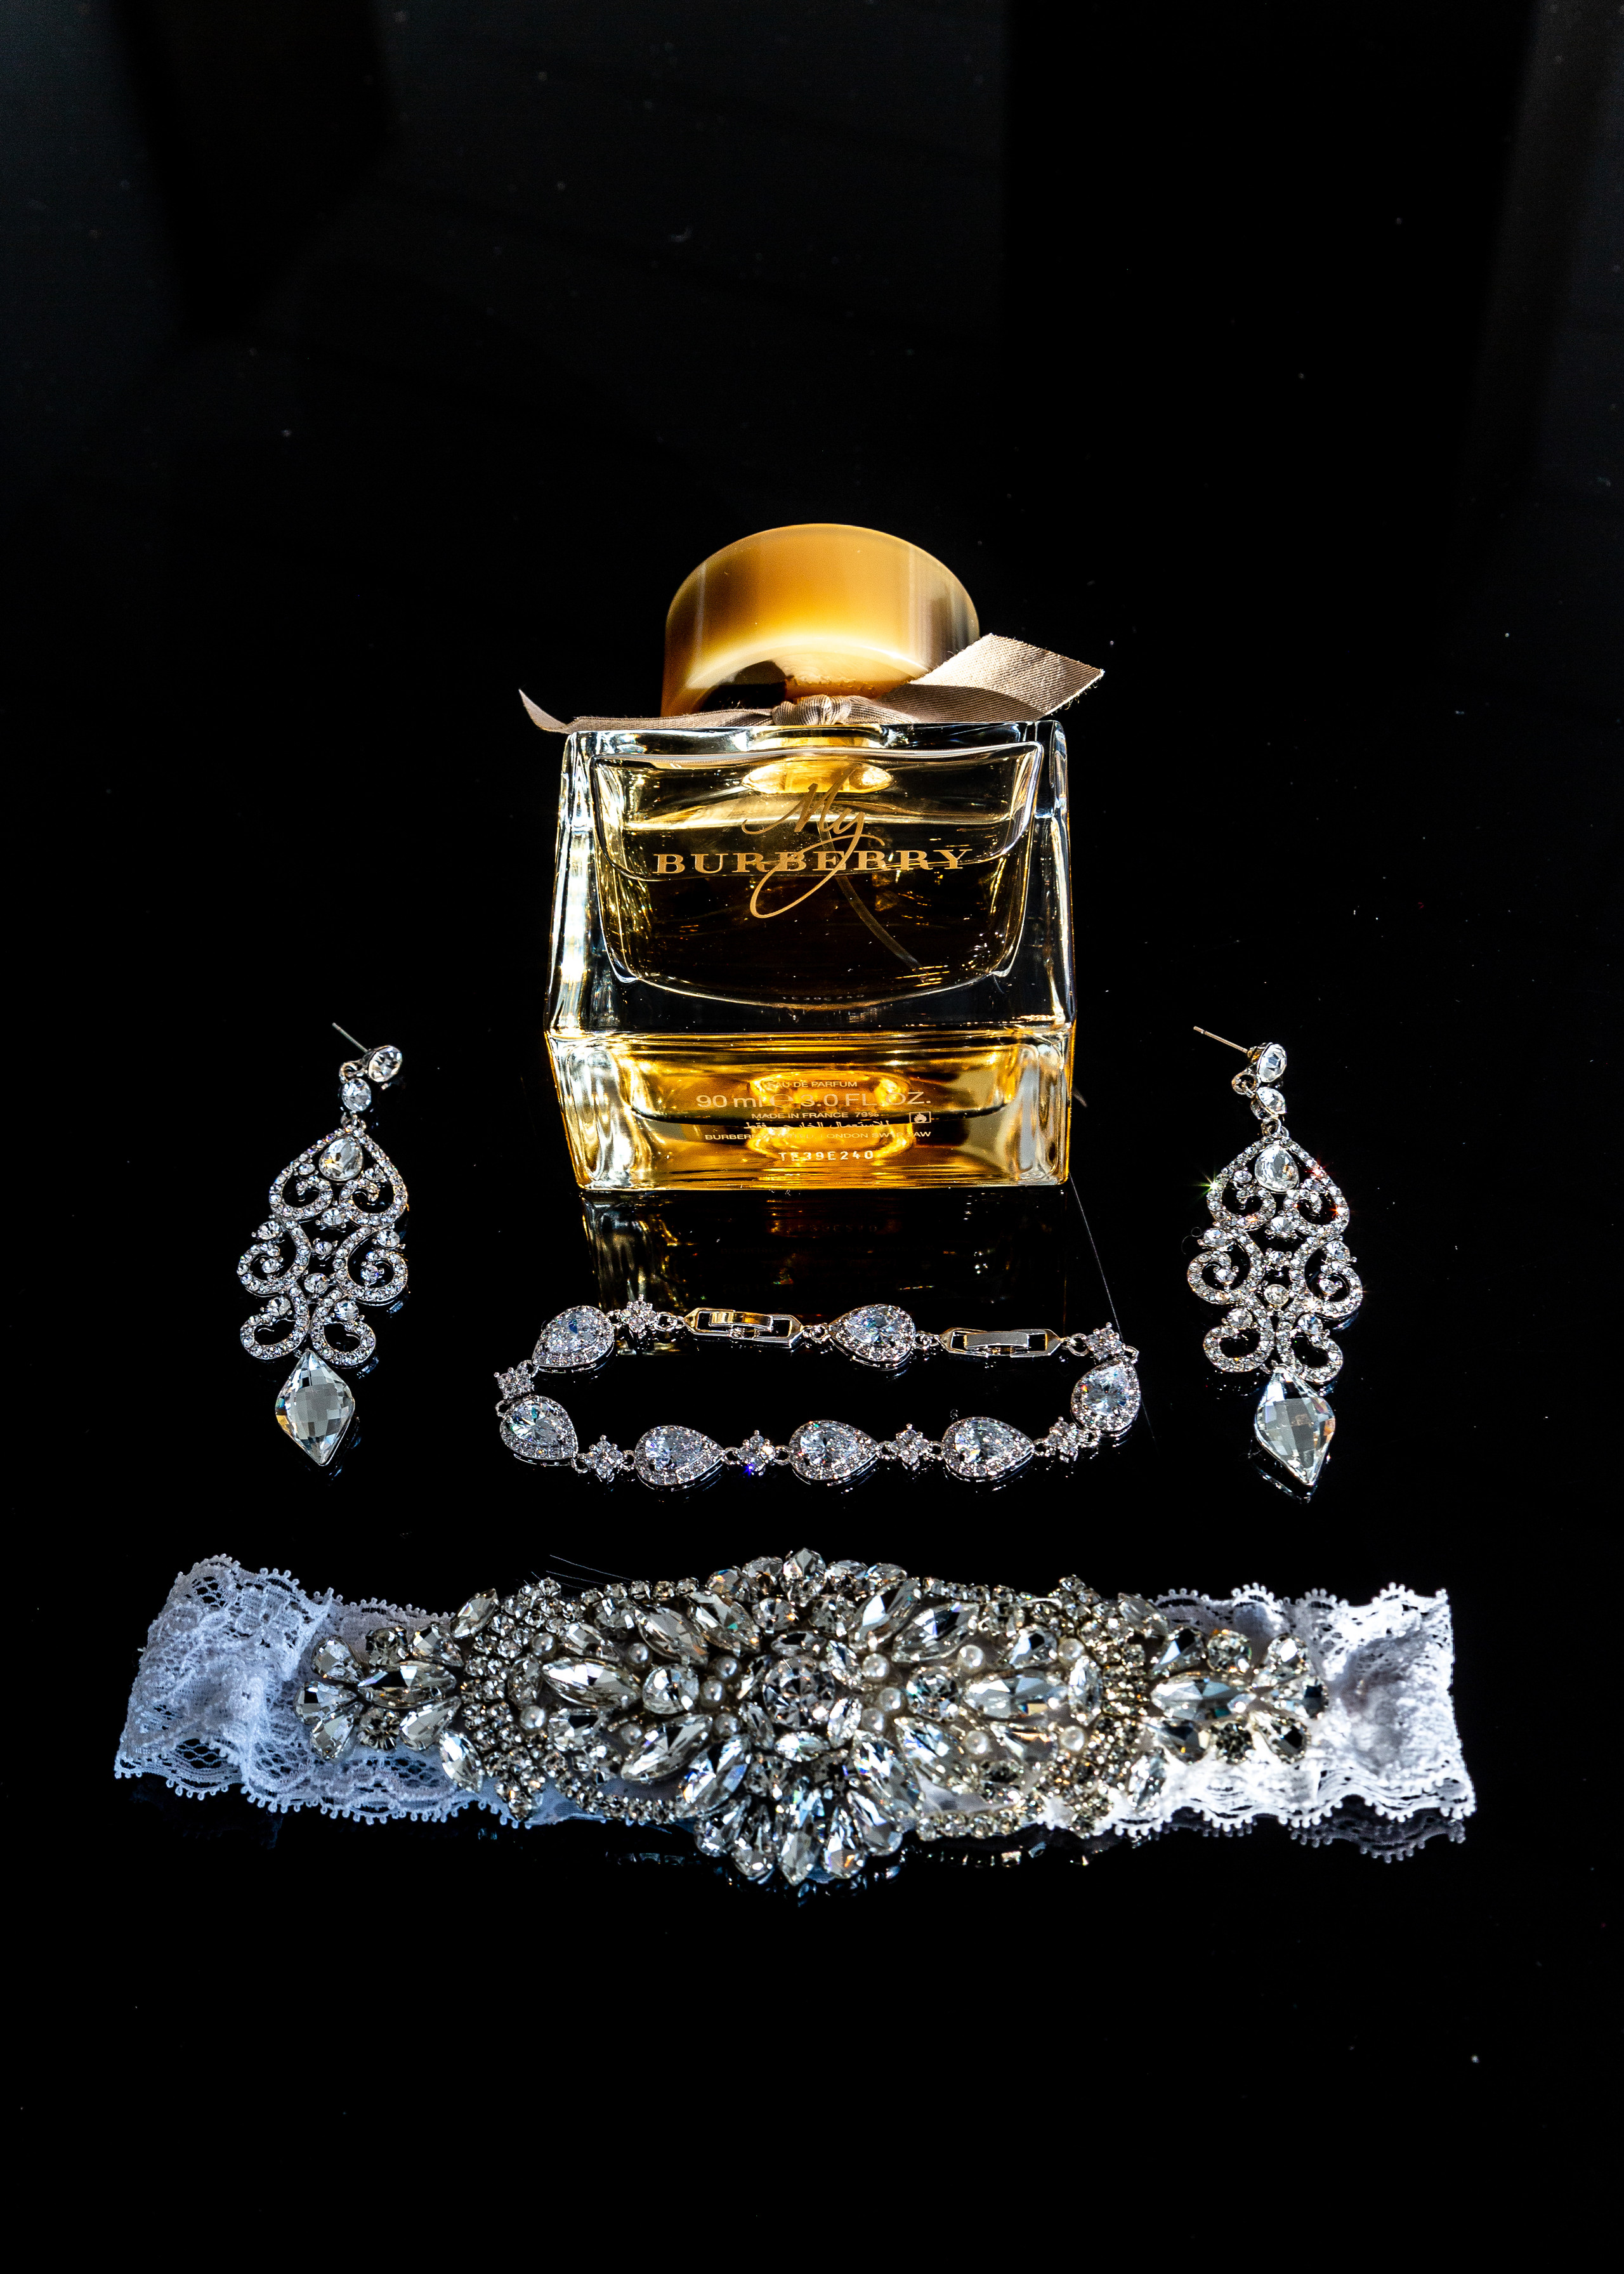 Wedding detail of the bride's wedding jewelry and perfume before the wedding at the Hilton Main in Norfolk, Virginia.